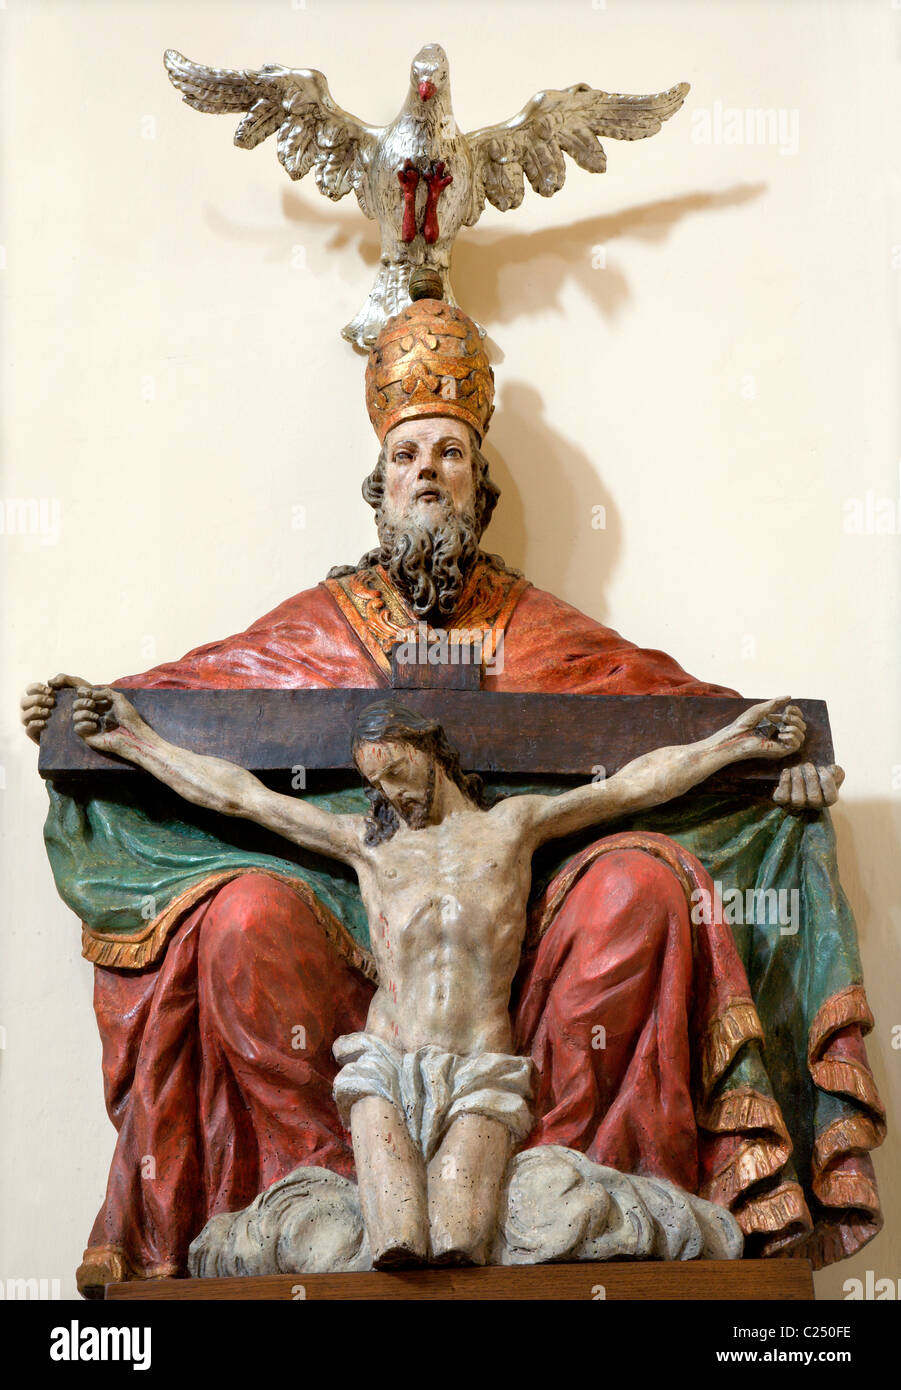 holy Trinity statue from Vienna church - carving - Stock Image